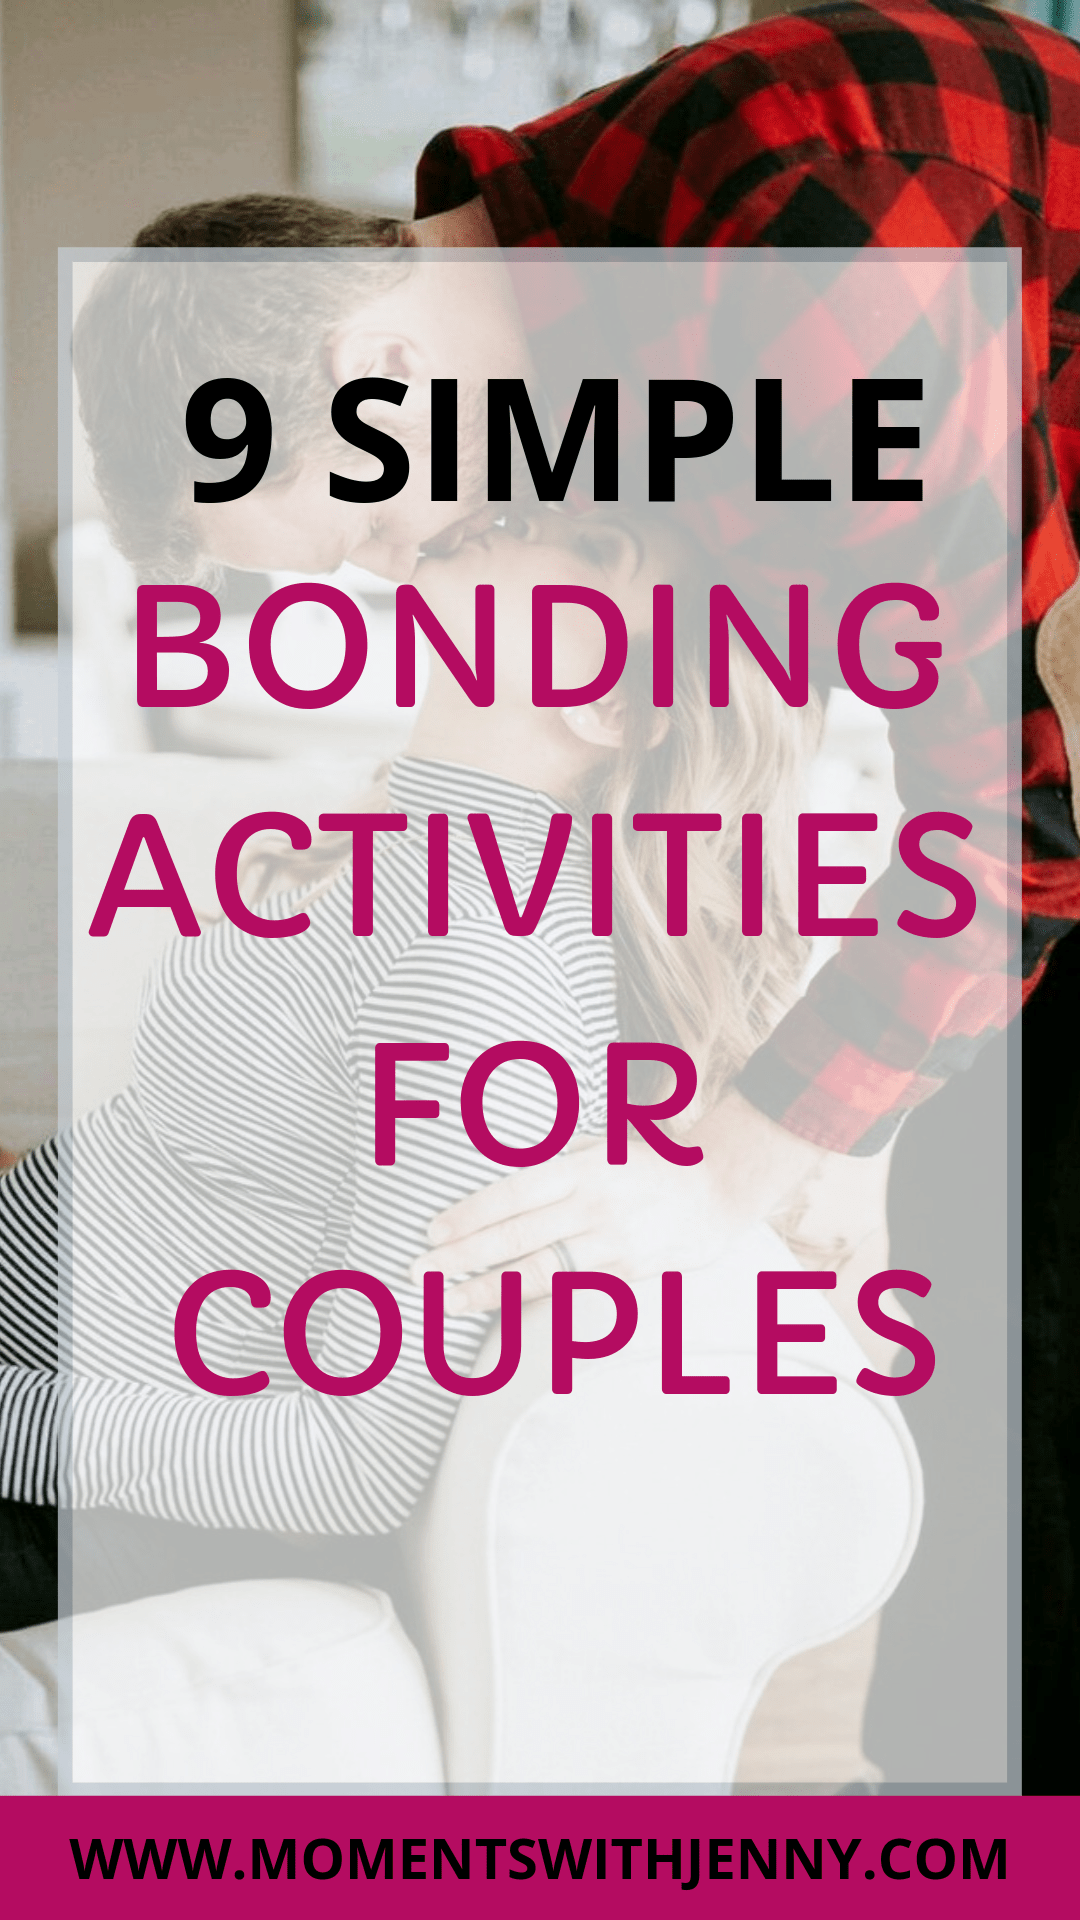 9 Simple Bonding Activities For Couples To Do Together